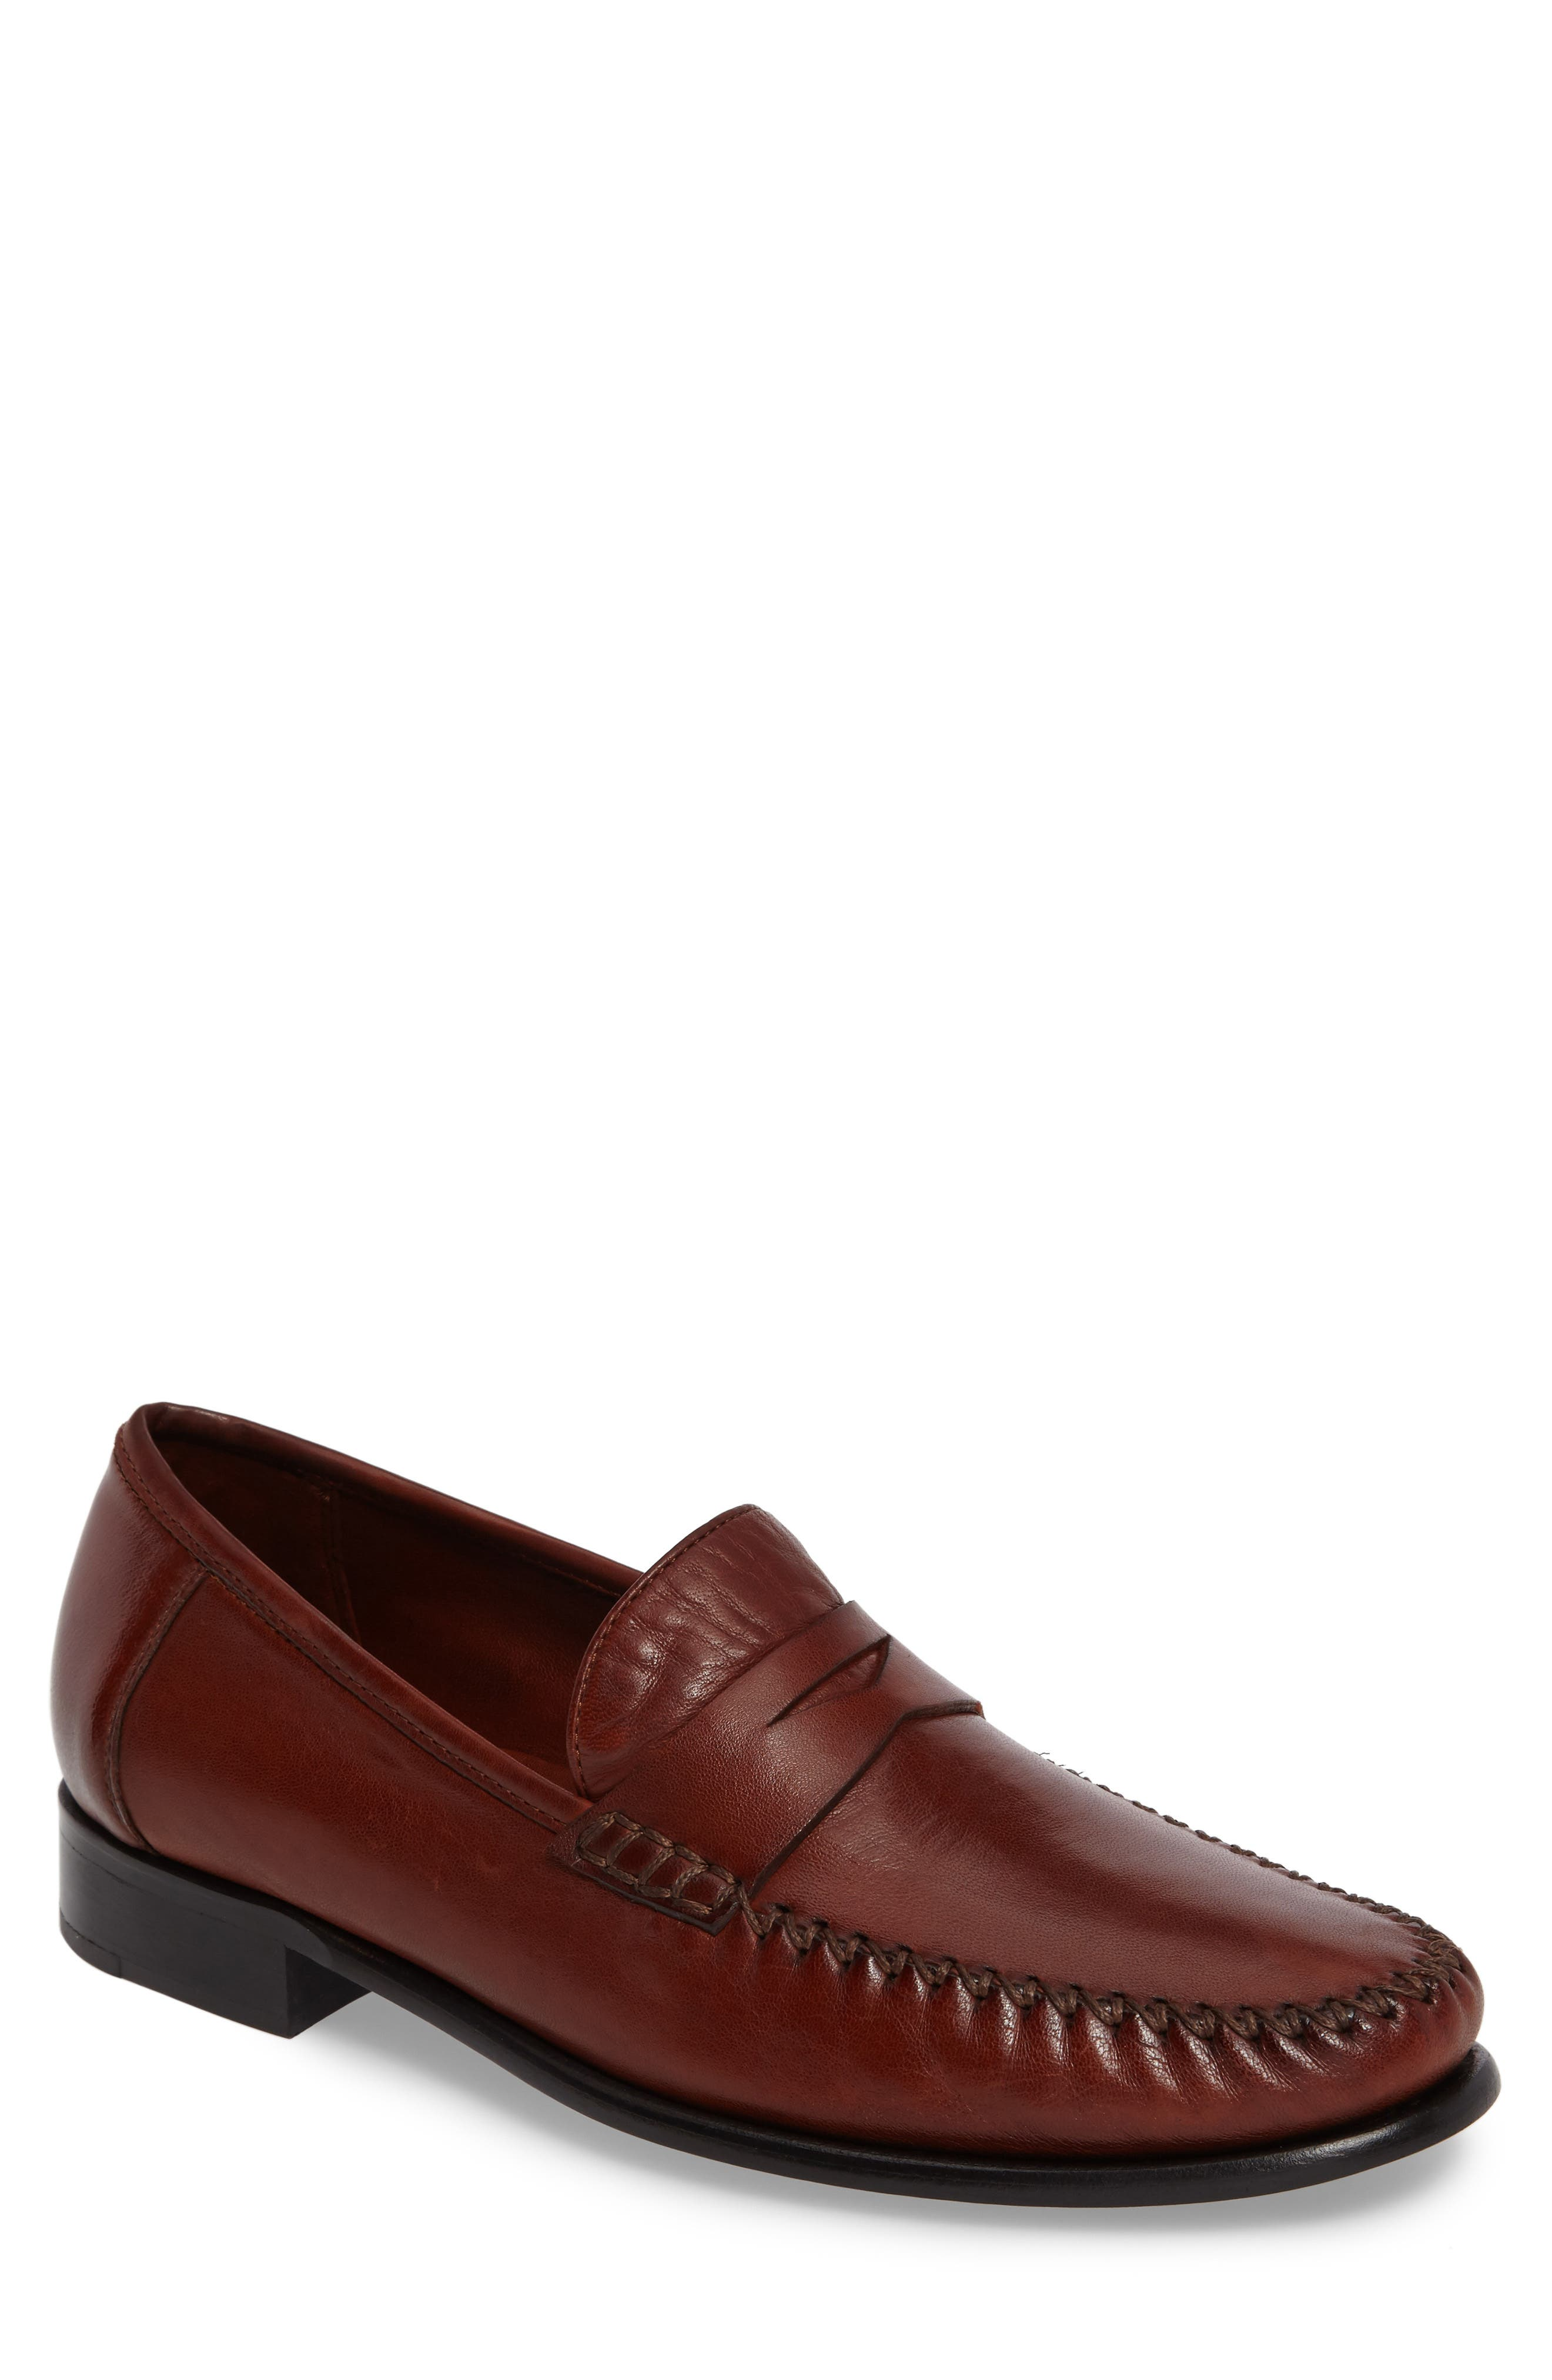 ROBERT ZUR Penny Loafer, Main, color, DARK LUGGAGE LEATHER